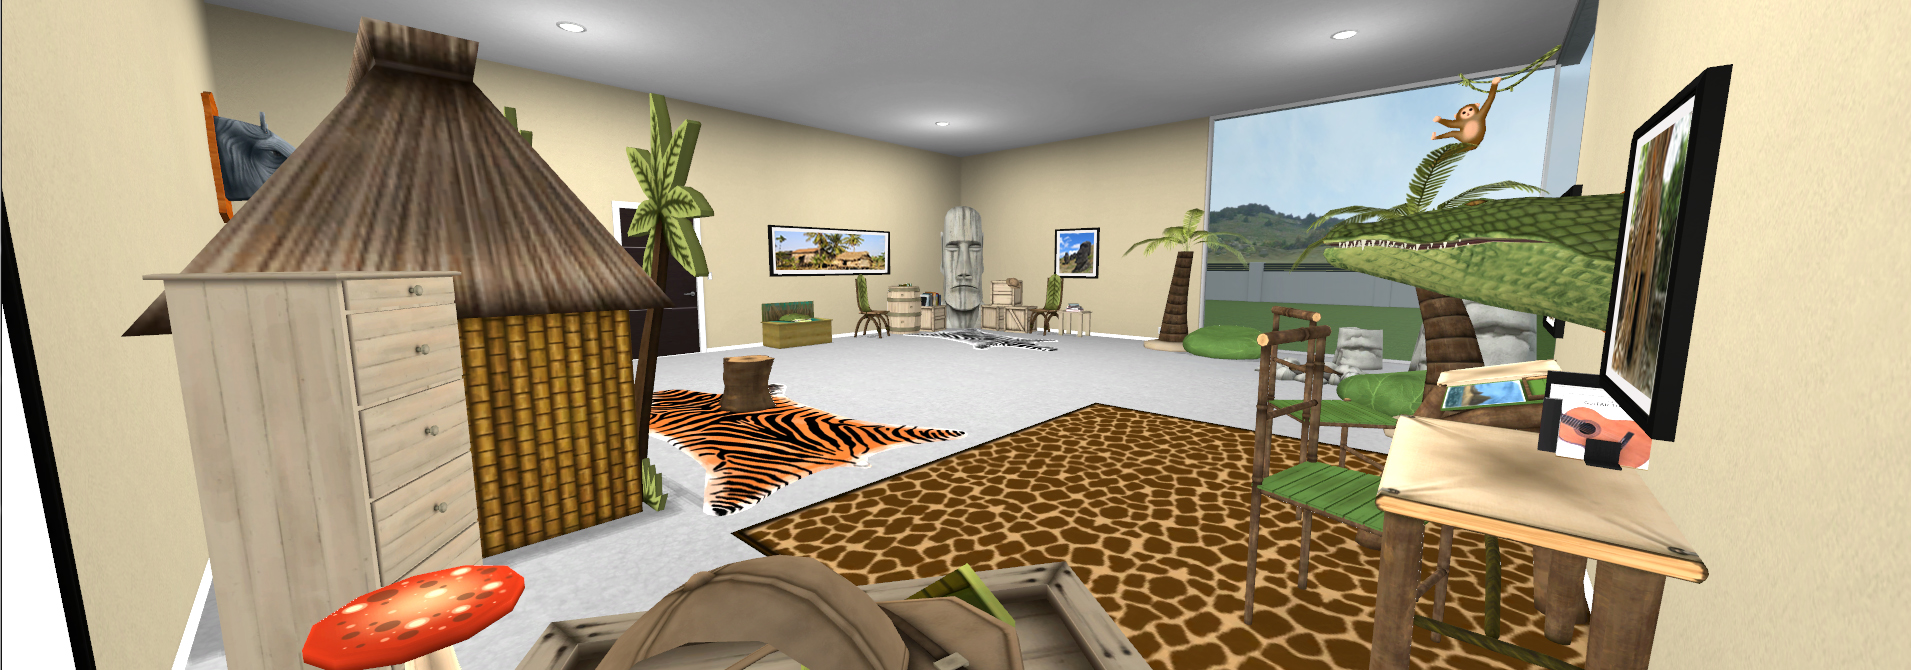 Contemporary Sunset - Kids' Room